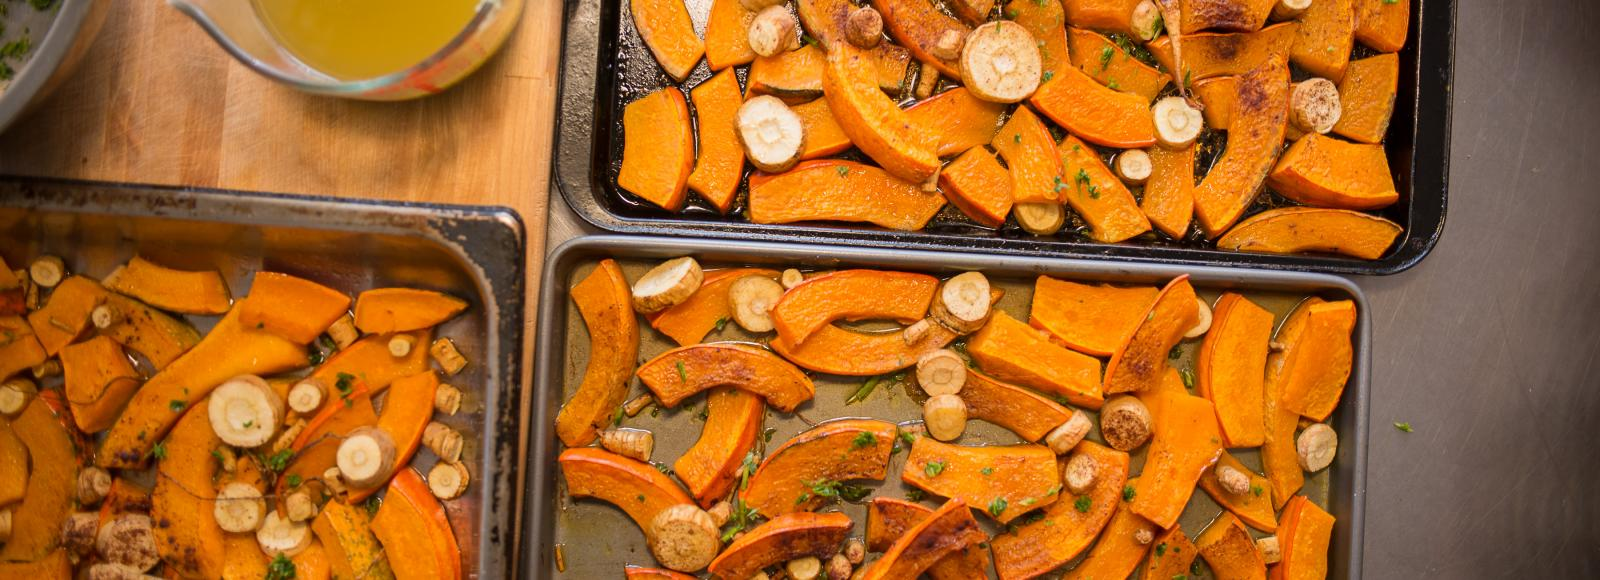 Trays of roasted squash and parnsnips rest on a butcher block table next to a pitcher of yellow oil or butter.